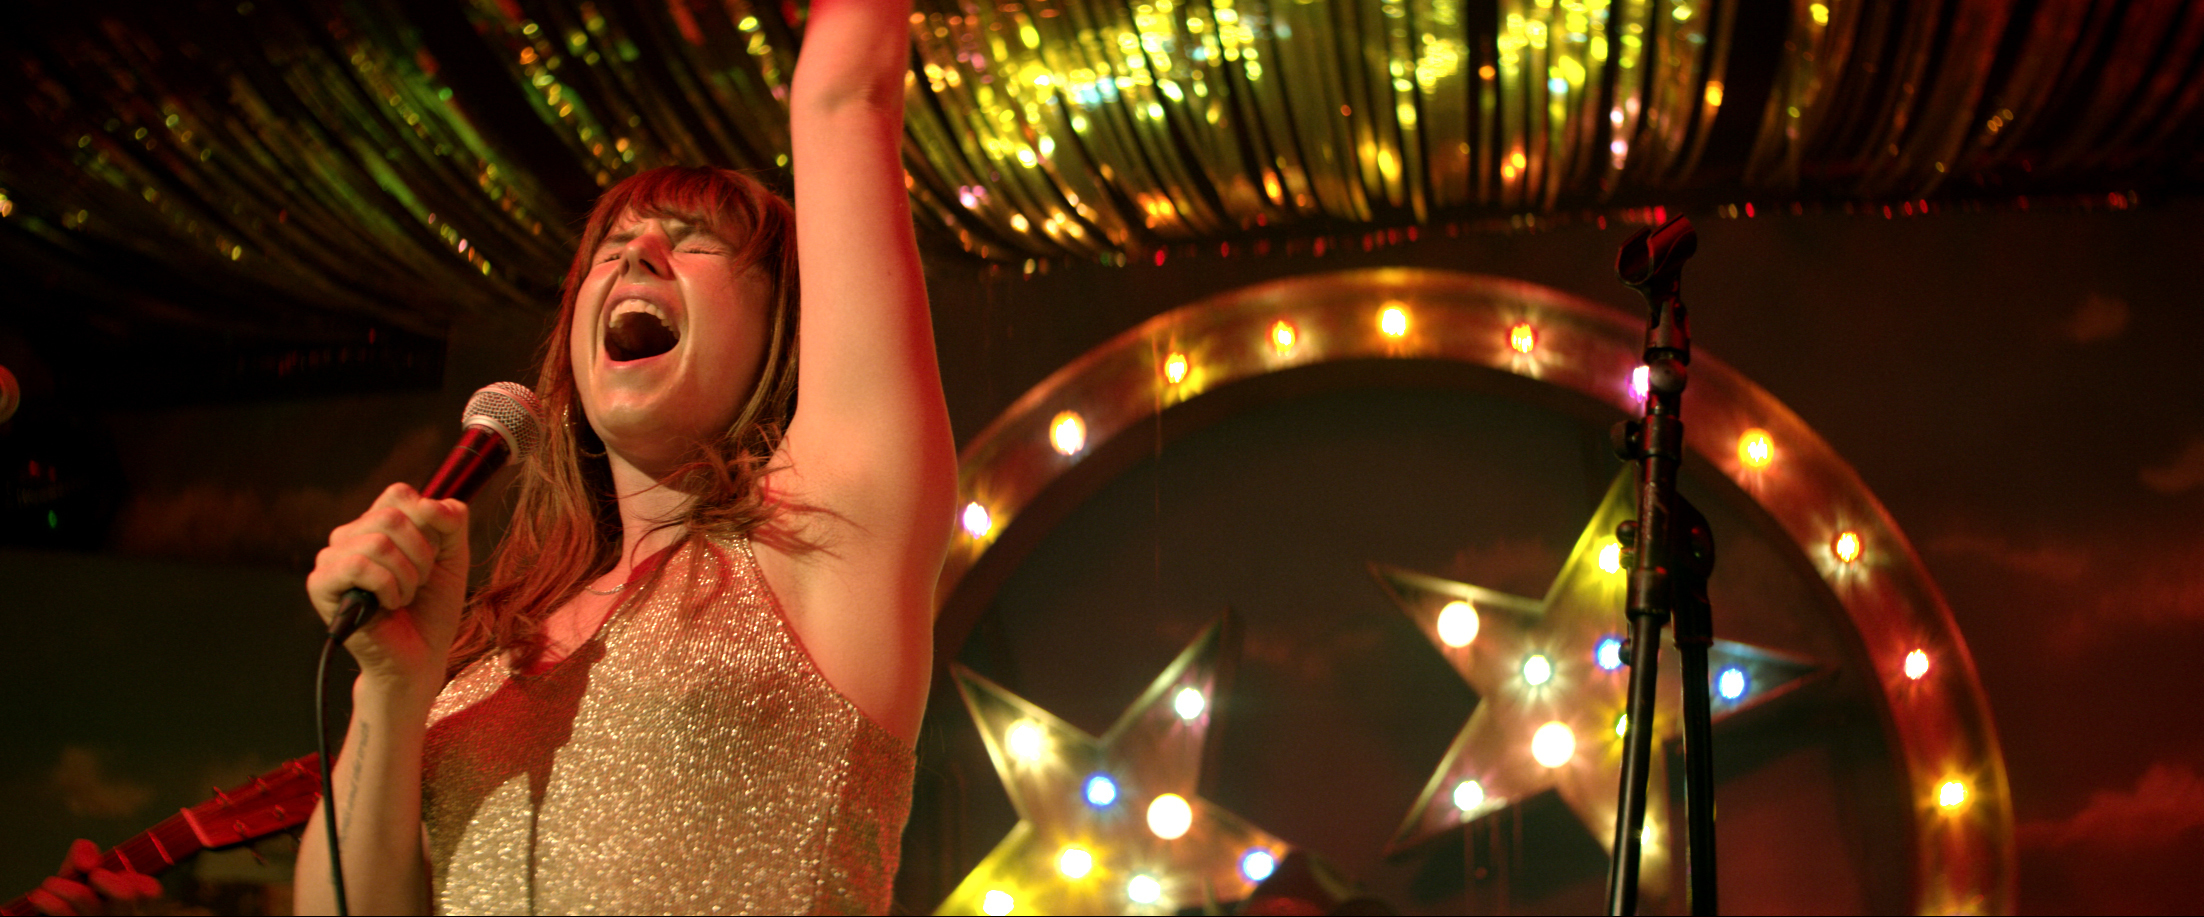 Jessie Buckley stars as Rose-Lynn Harlan, a young mother eager to make it as a country singer.